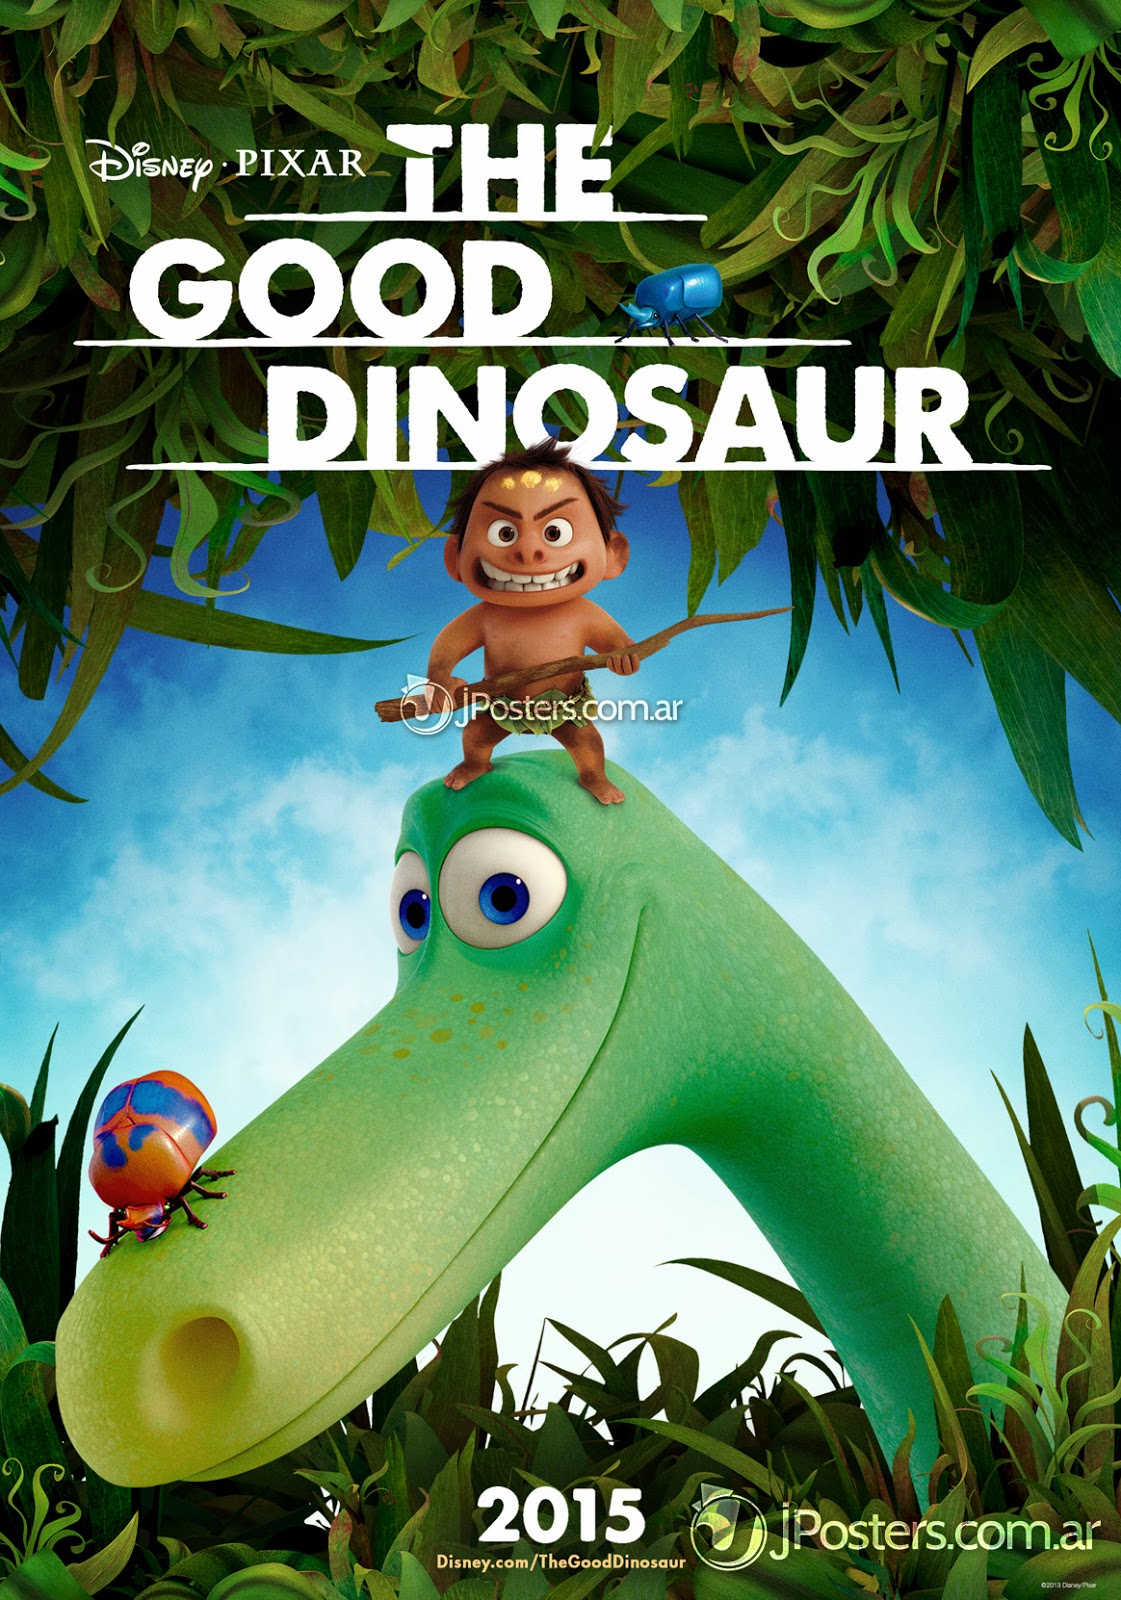 Confirmed: 'The Good Dinosaur' Poster Was Not Released By Disney/Pixar